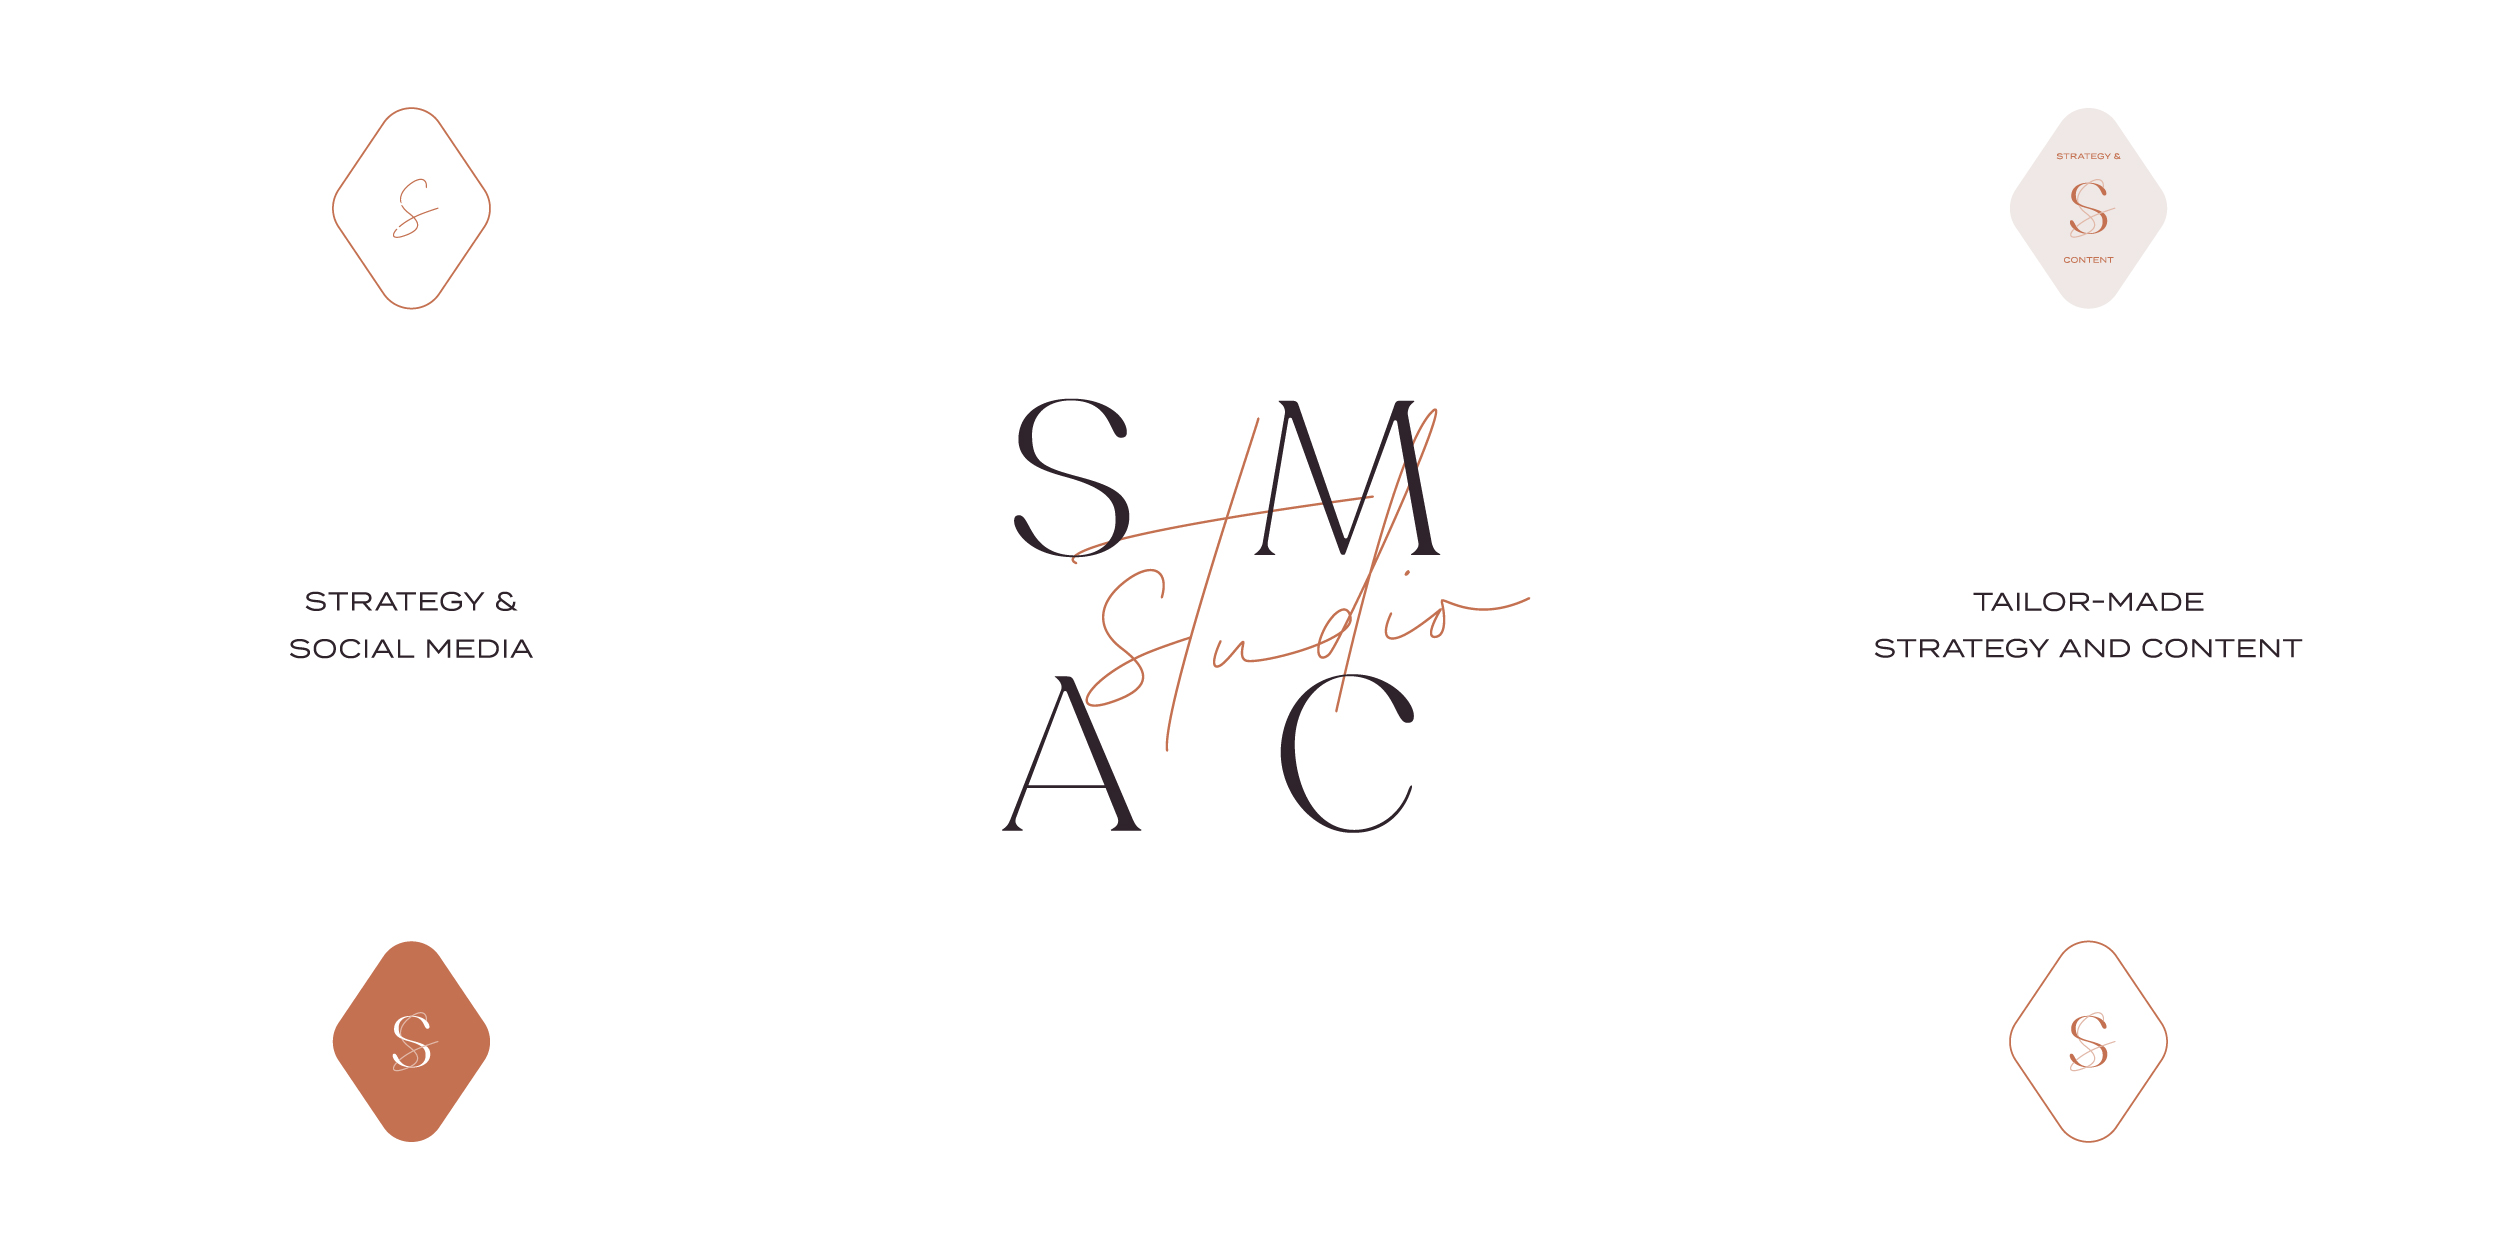 Brand Design and Strategy and Website Design by Lorin Galloway of Freckled Design Studio for SMAC Studio, specialising in social media strategy and content solutions